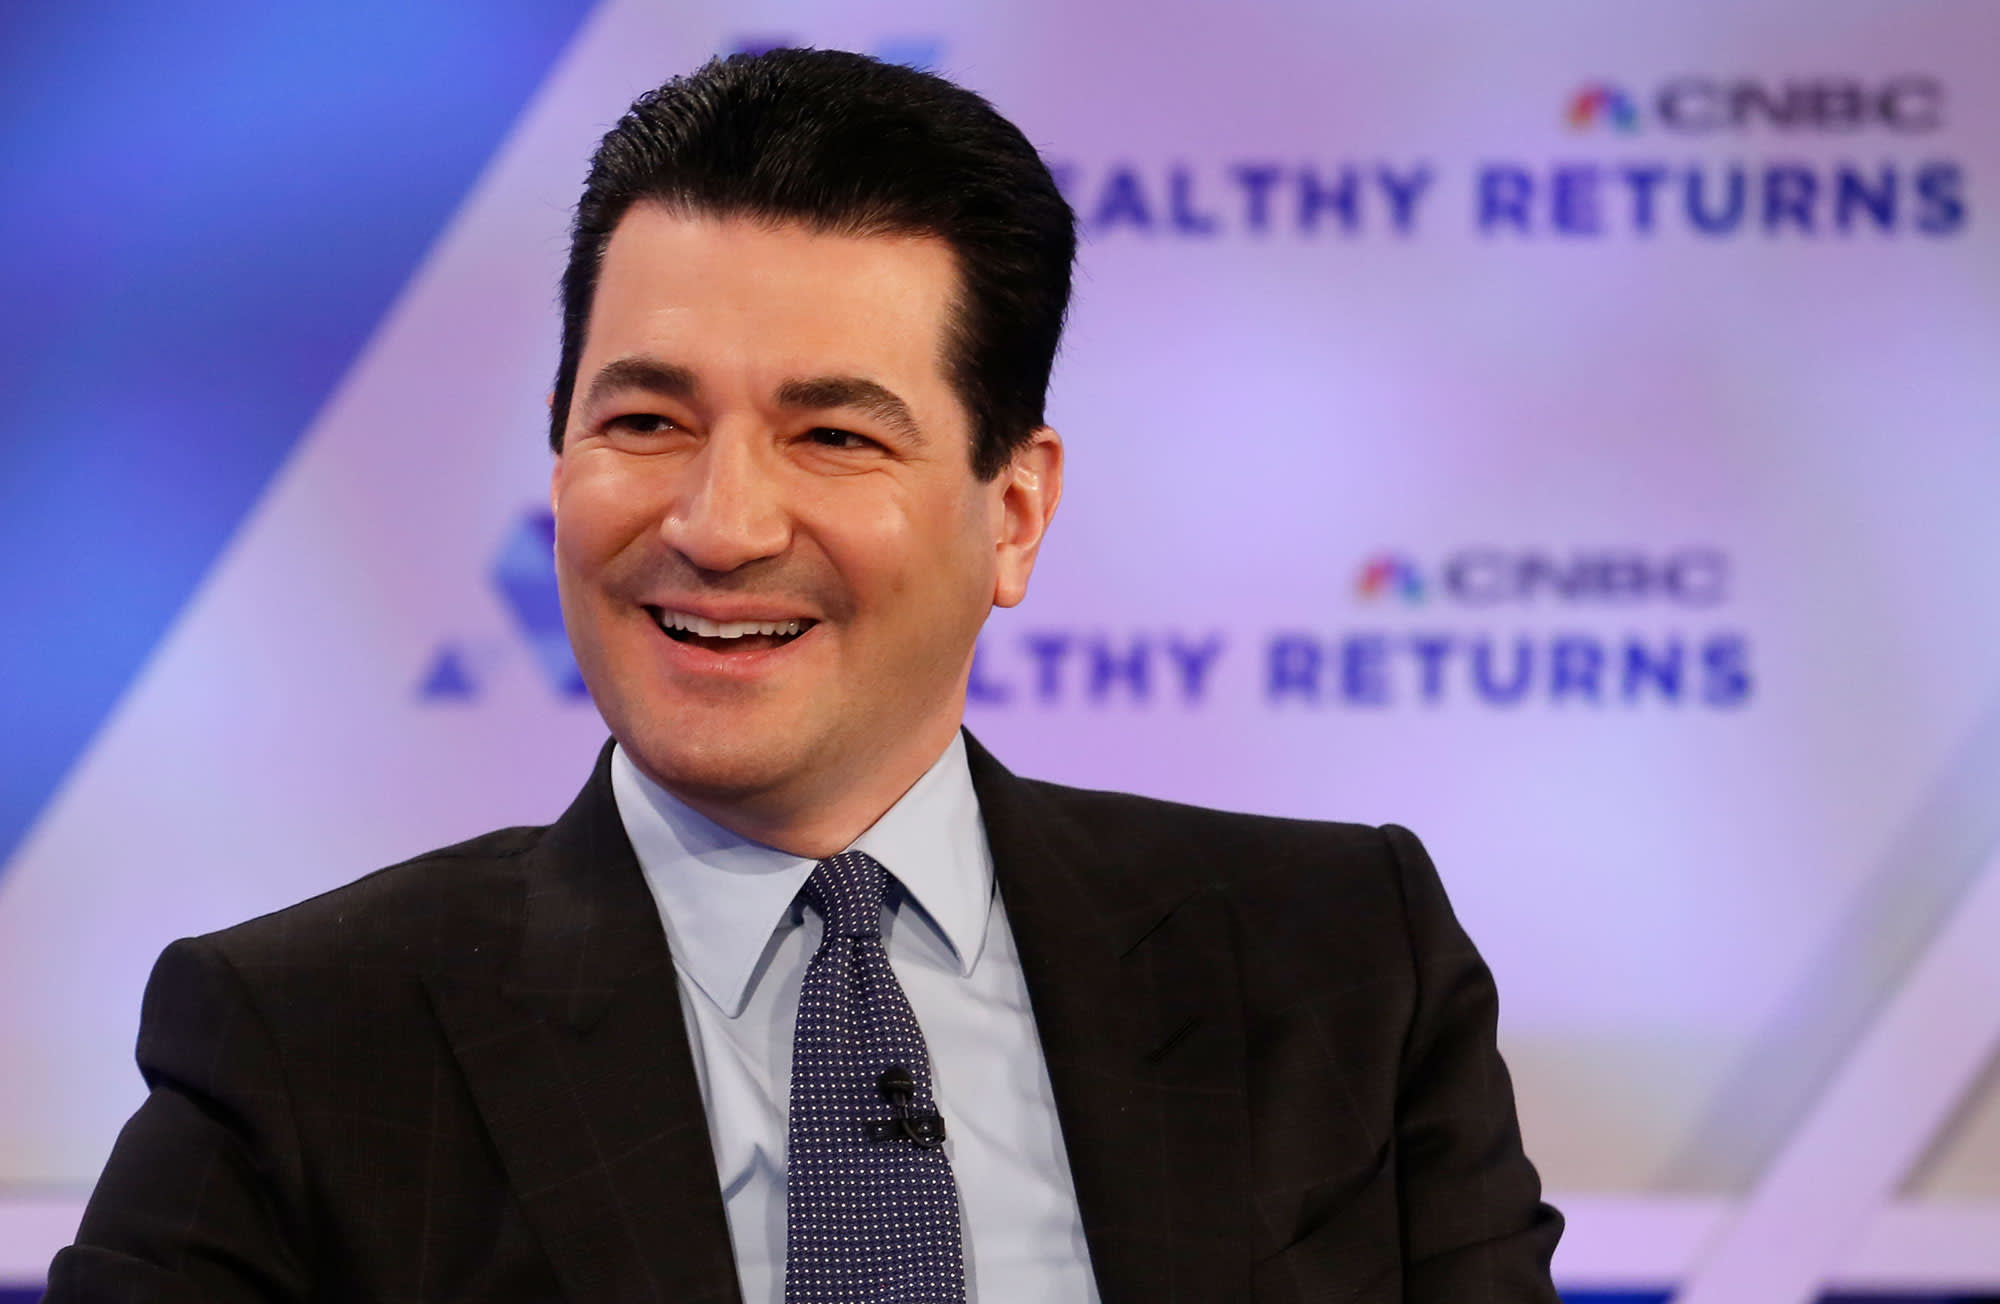 Scott Gottlieb, former Commissioner of the Food and Drug Administration, speaking at the CNBC Healthy Returns Conference in New York on March 28th, 2018.